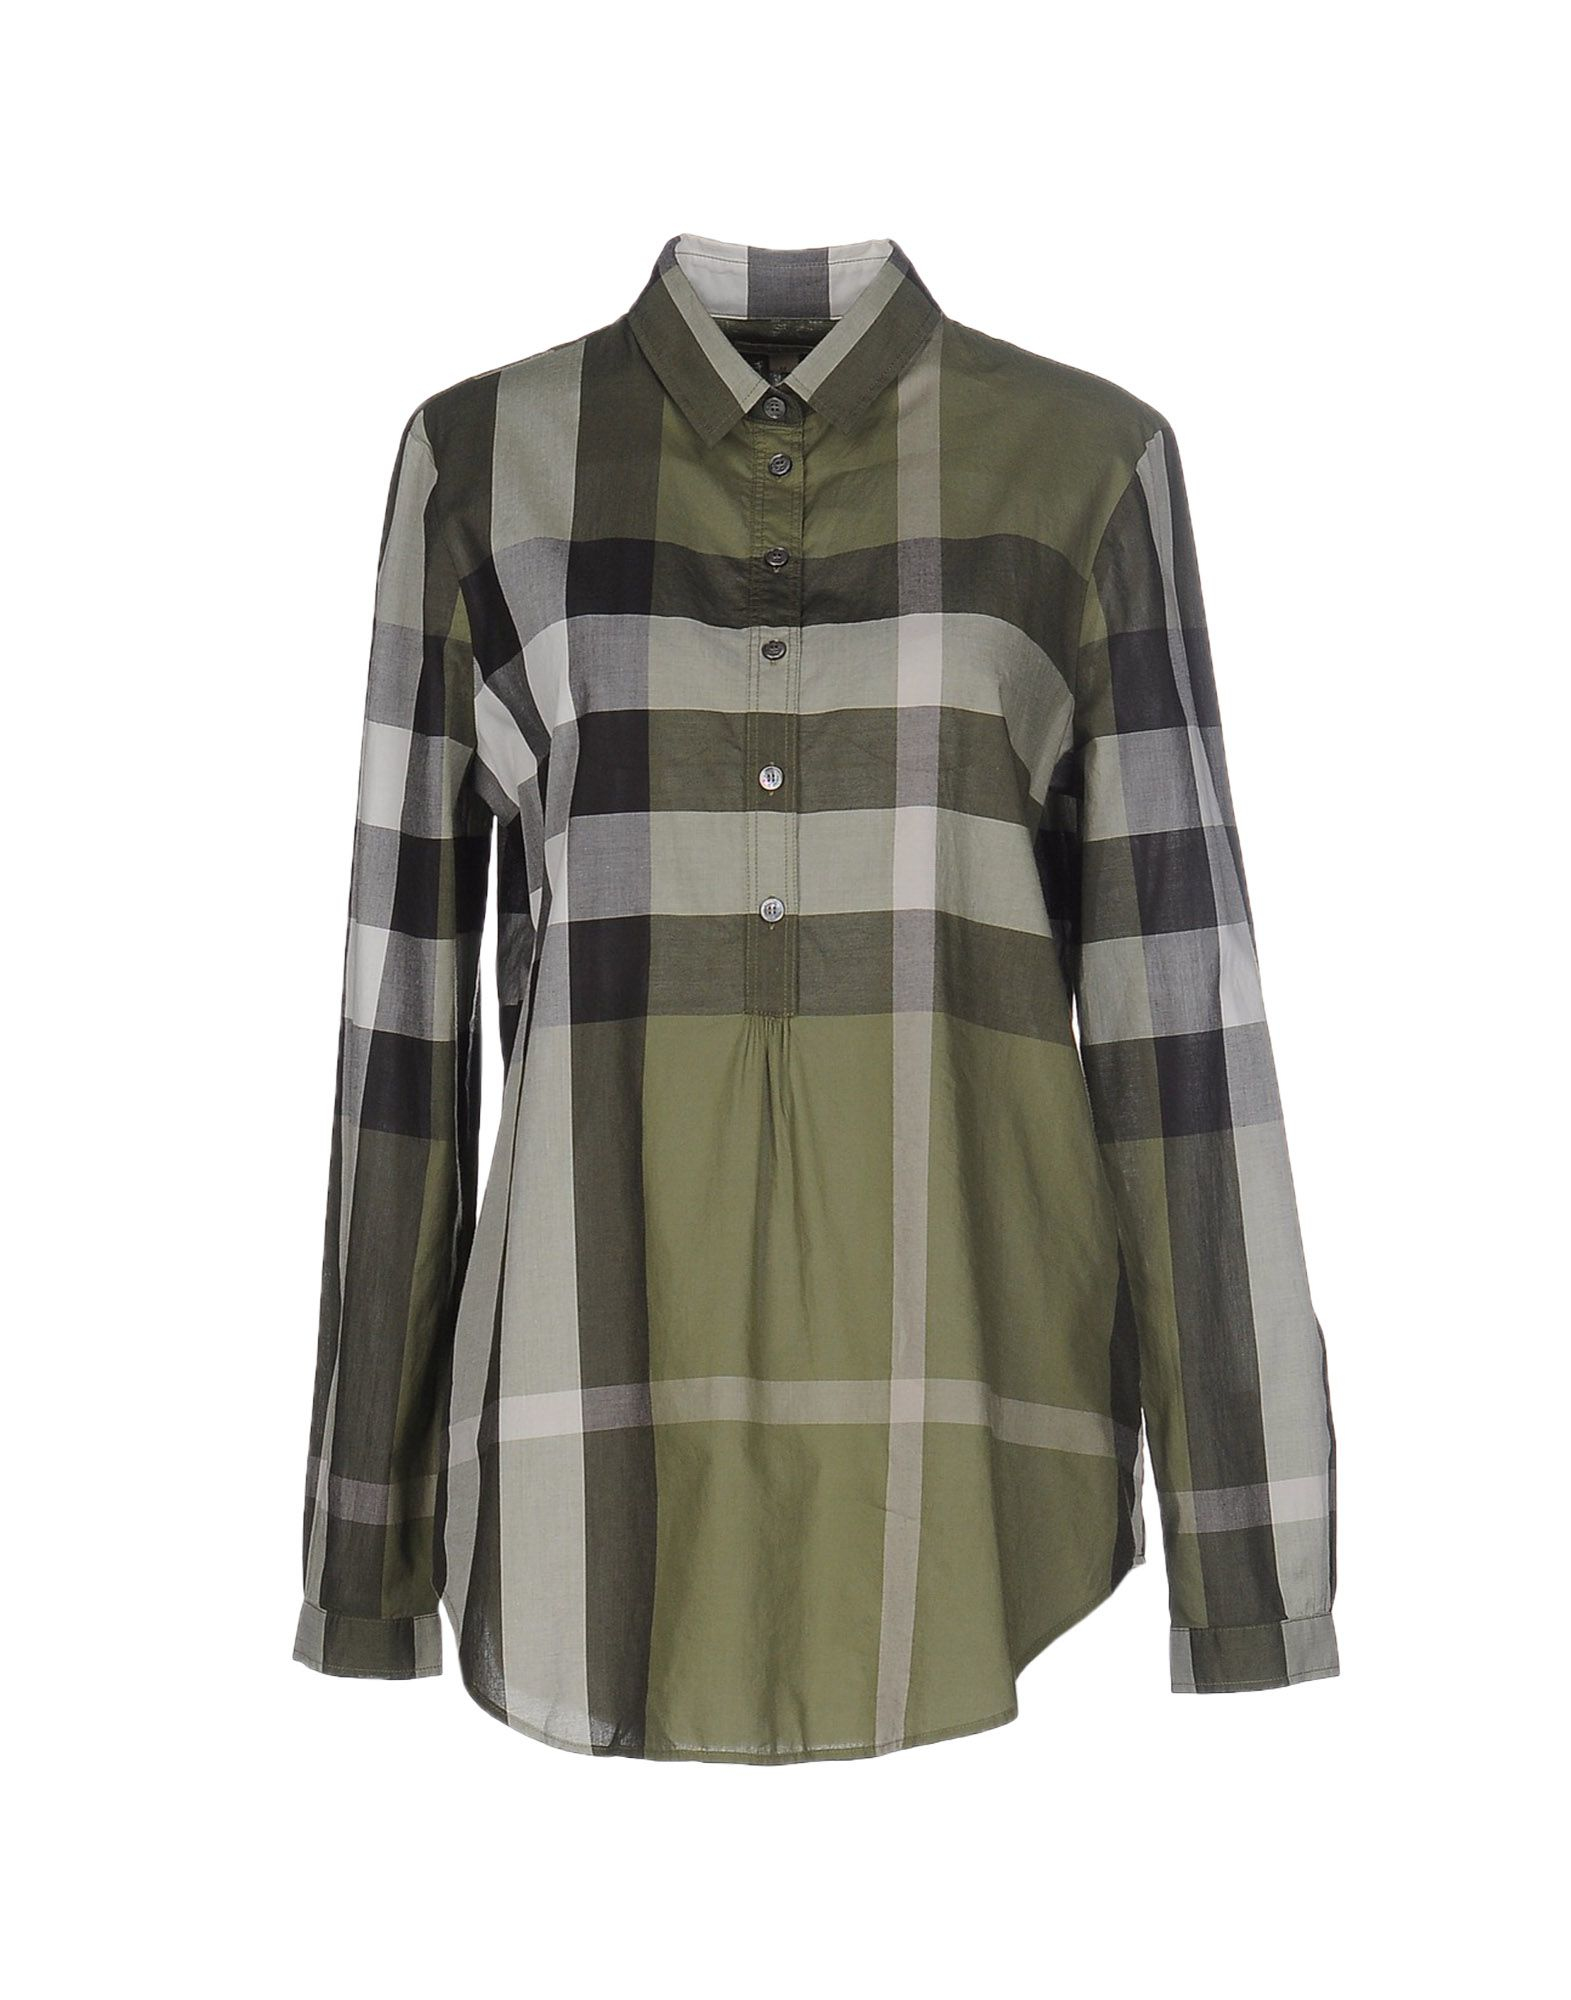 Lyst burberry brit shirt in green for Burberry brit green plaid shirt